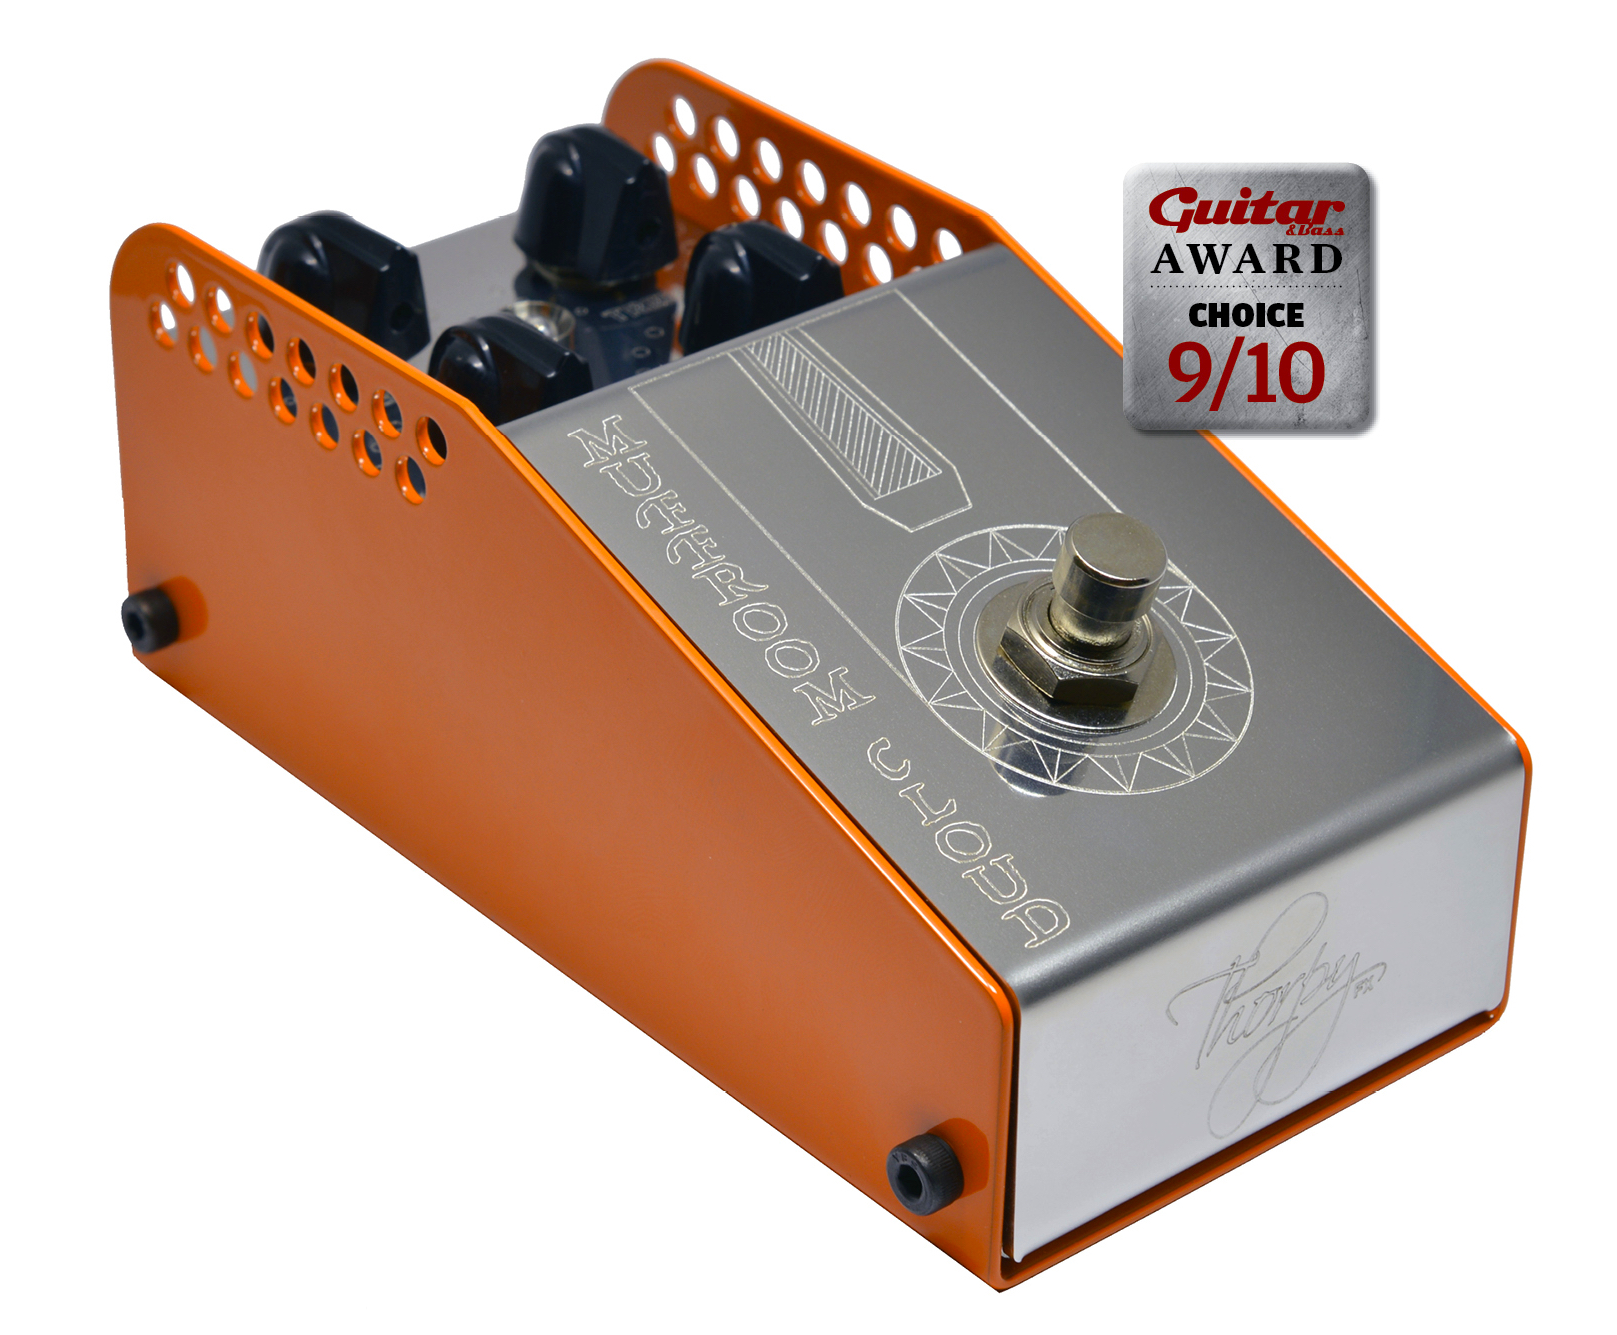 thorpyfx muffroom cloud fuzz pedal review all things guitar. Black Bedroom Furniture Sets. Home Design Ideas